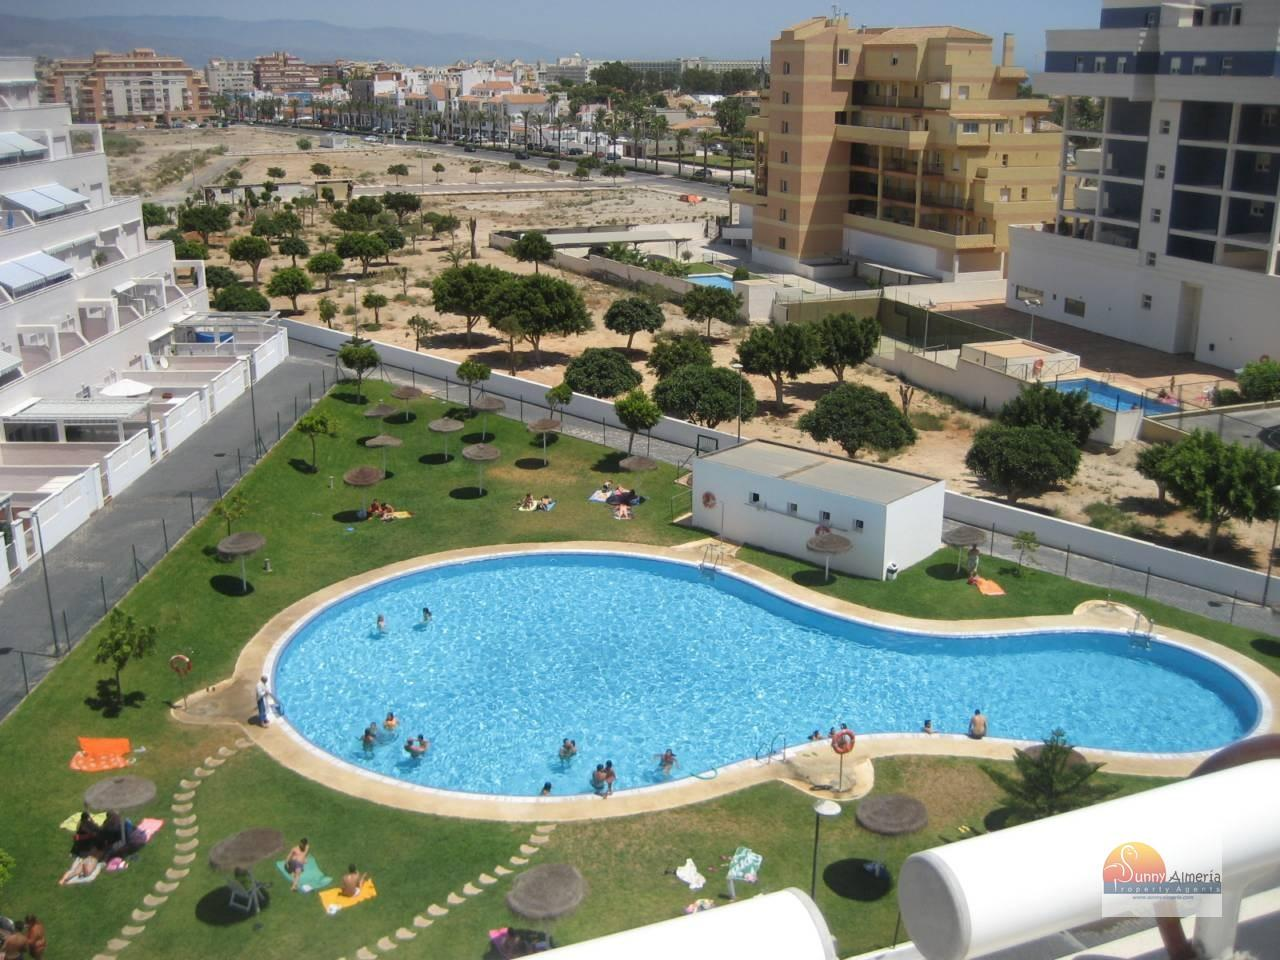 Apartment for sale in av rosita ferrer 4 (Roquetas de Mar), 135.000 €